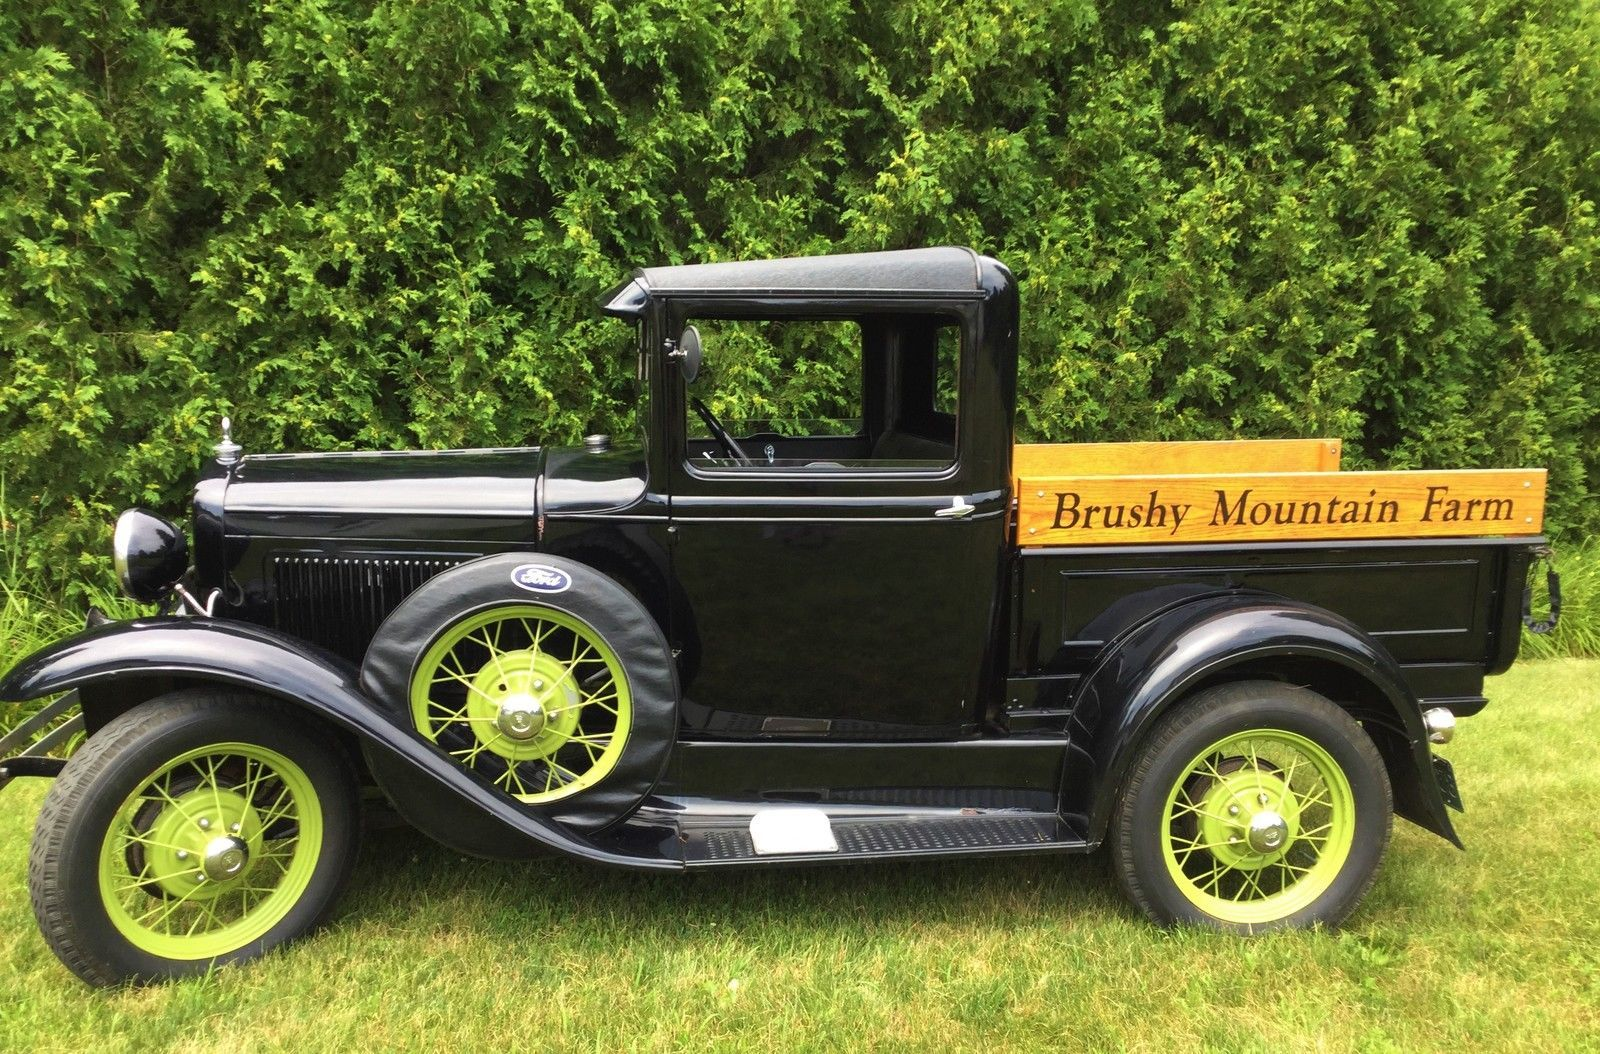 1931 Ford Model A 2 Door Pickup In Ebay Motors Cars Amp Trucks Ford Model A Ebay Ford Trucks Nissan Small Cars Ford Models